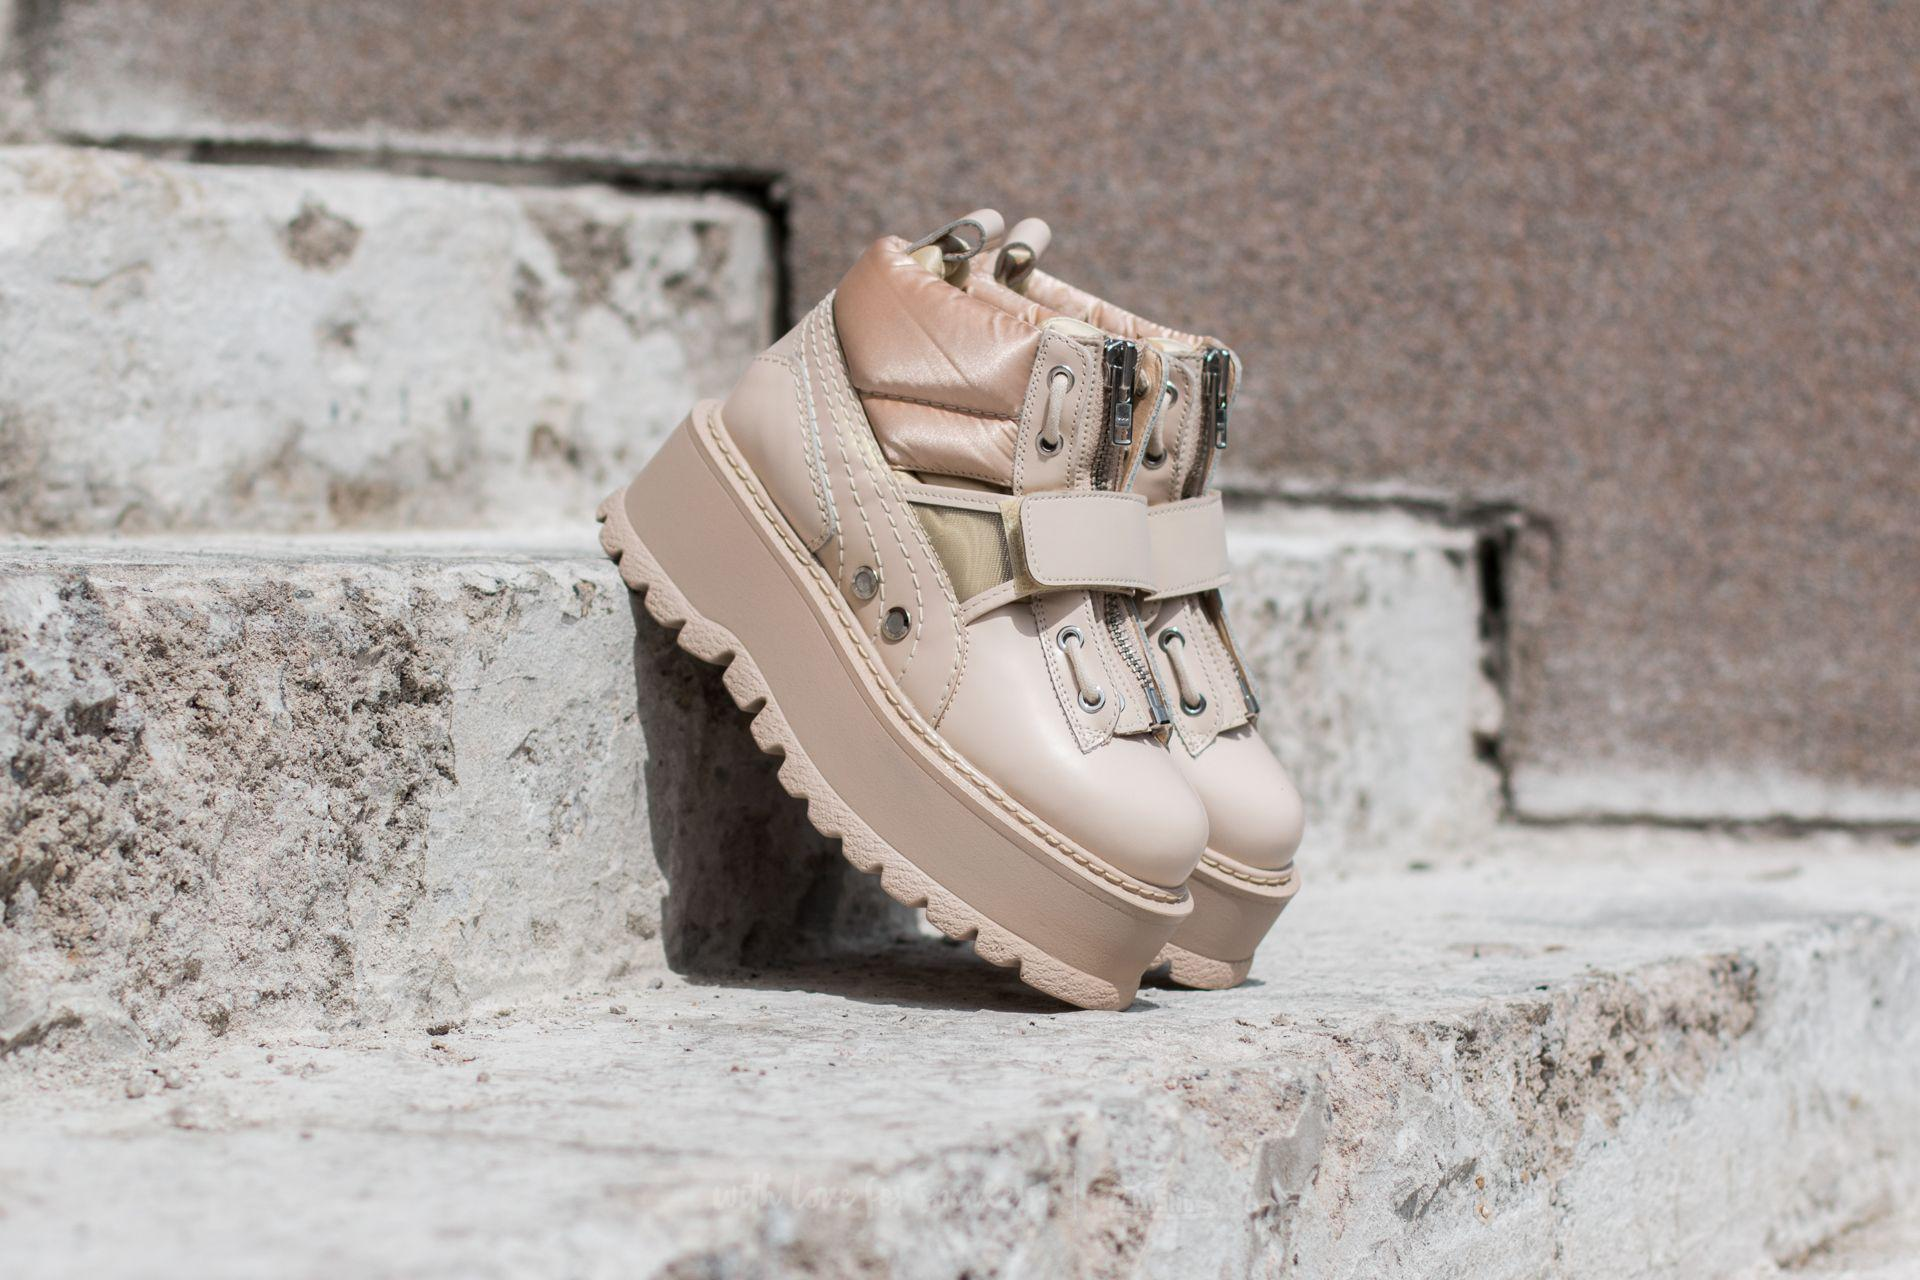 Lyst - Footshop Fenty Sneaker Boot Strap Wns Pink Tint-pink Tint Tint 1915a7ff7